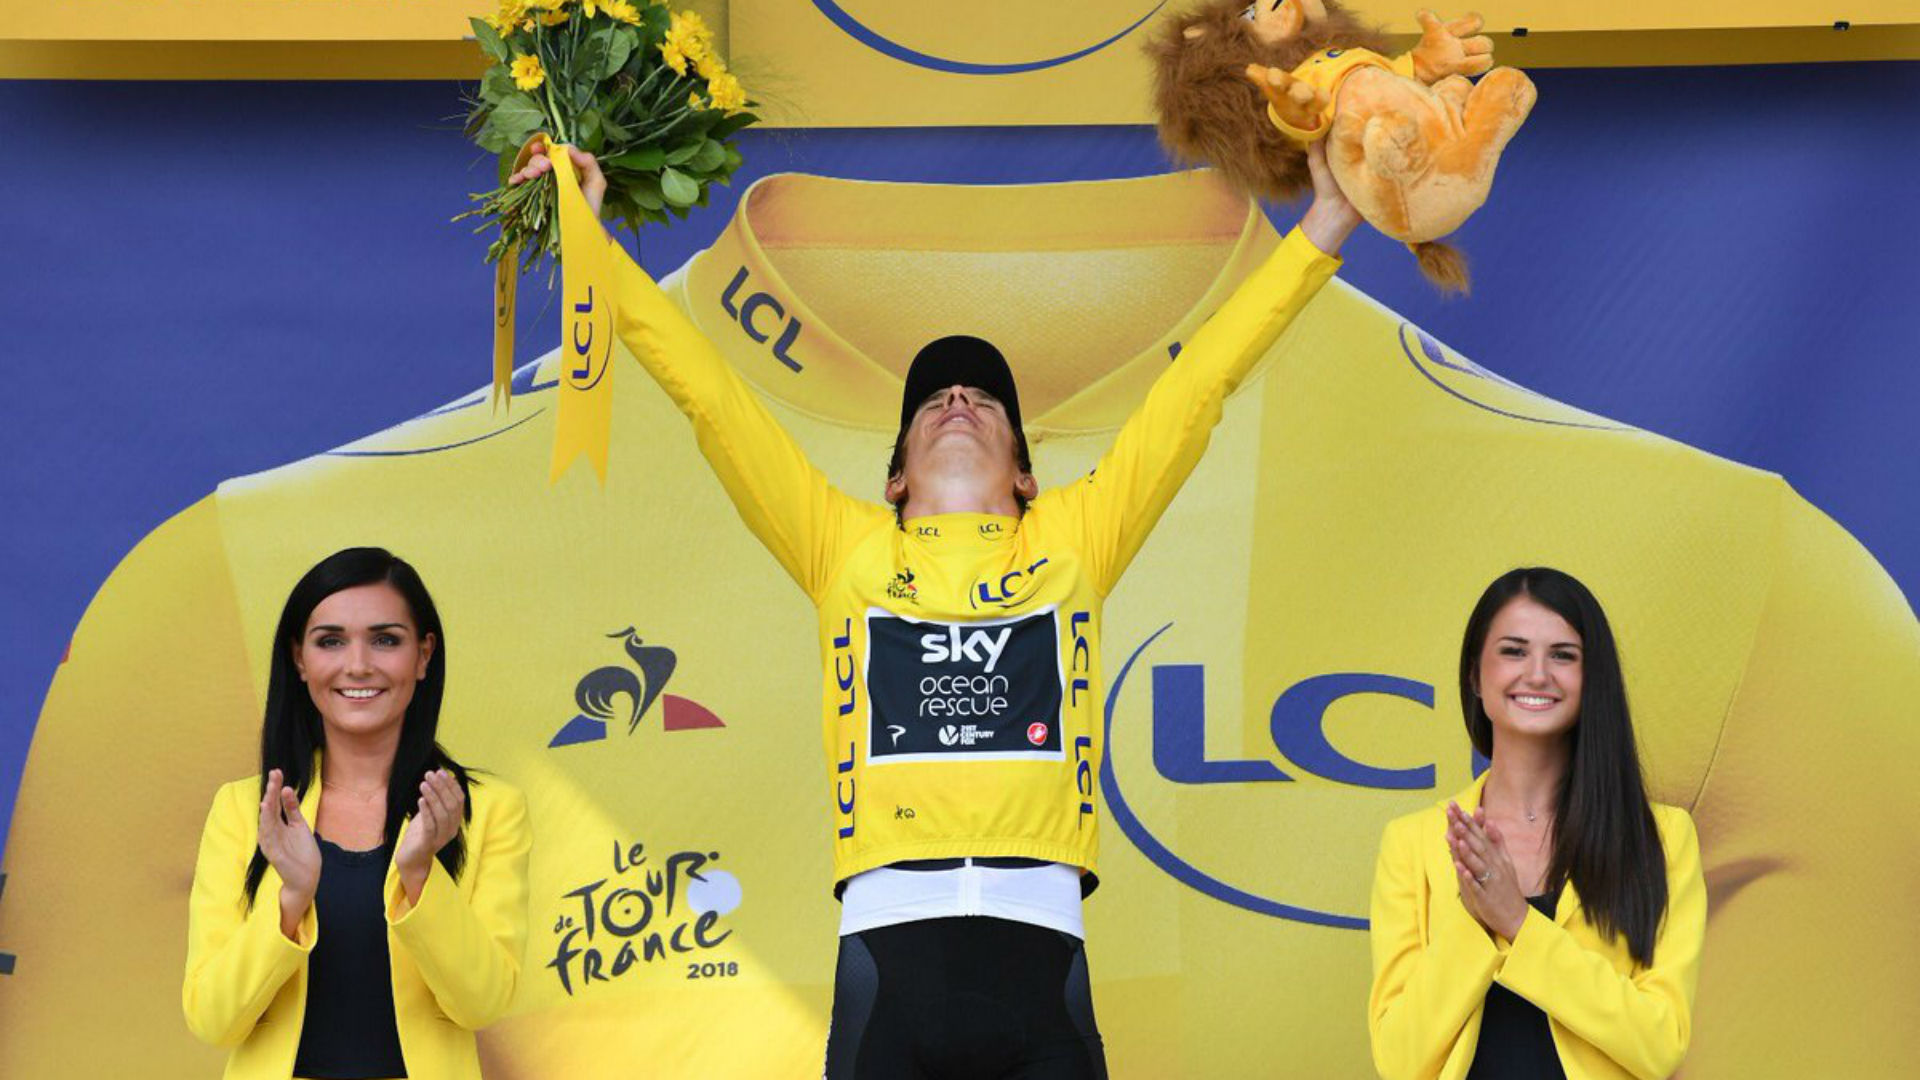 Geraint Thomas set to seal Tour de France victory